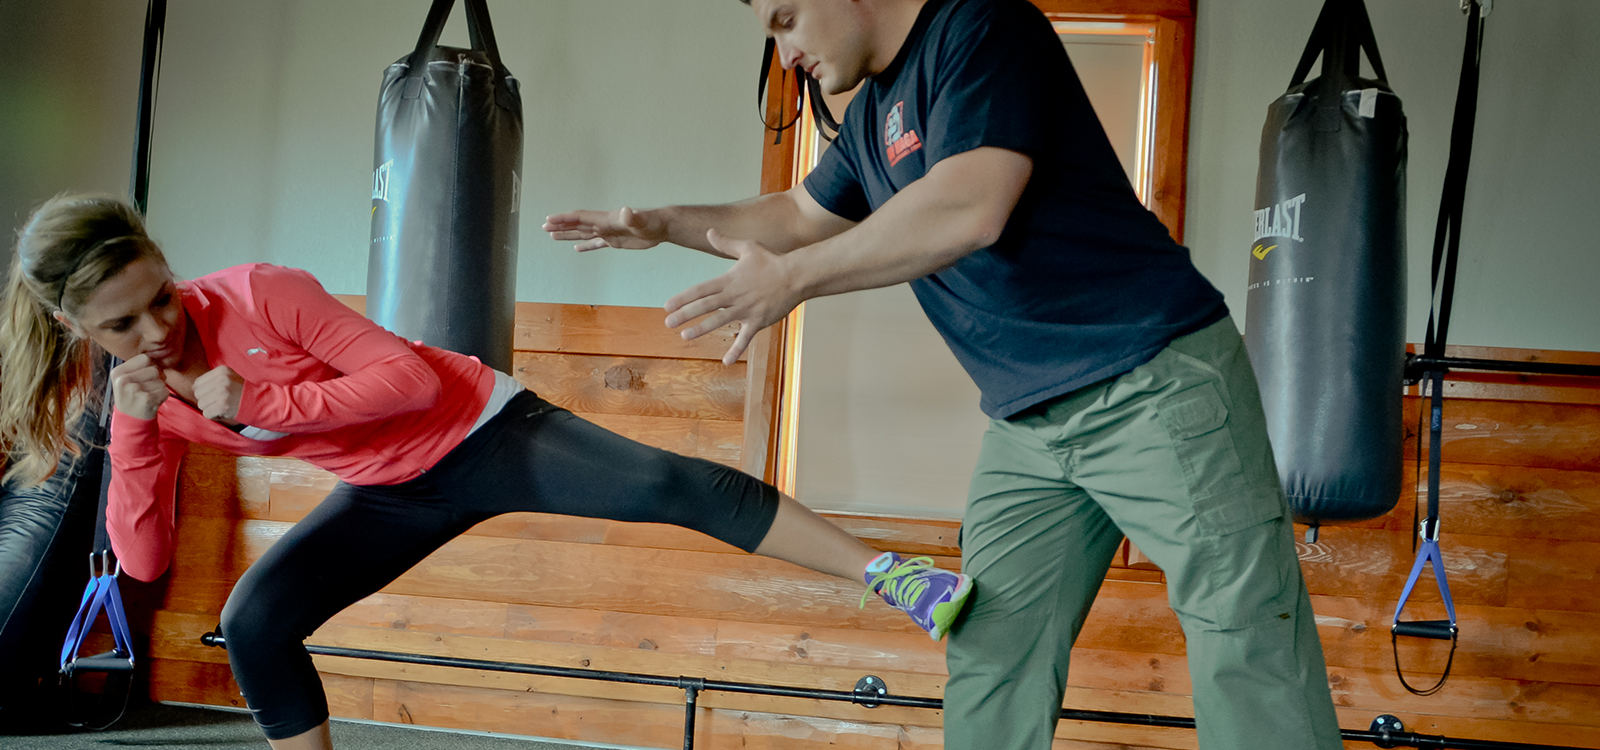 <div class='slider_caption'>		 <h1>Self-Defense Seminars</h1> 			<a class='slider-readmore' href='https://spartankravmaga.com/courses/'>Self Defense for Real People</a>